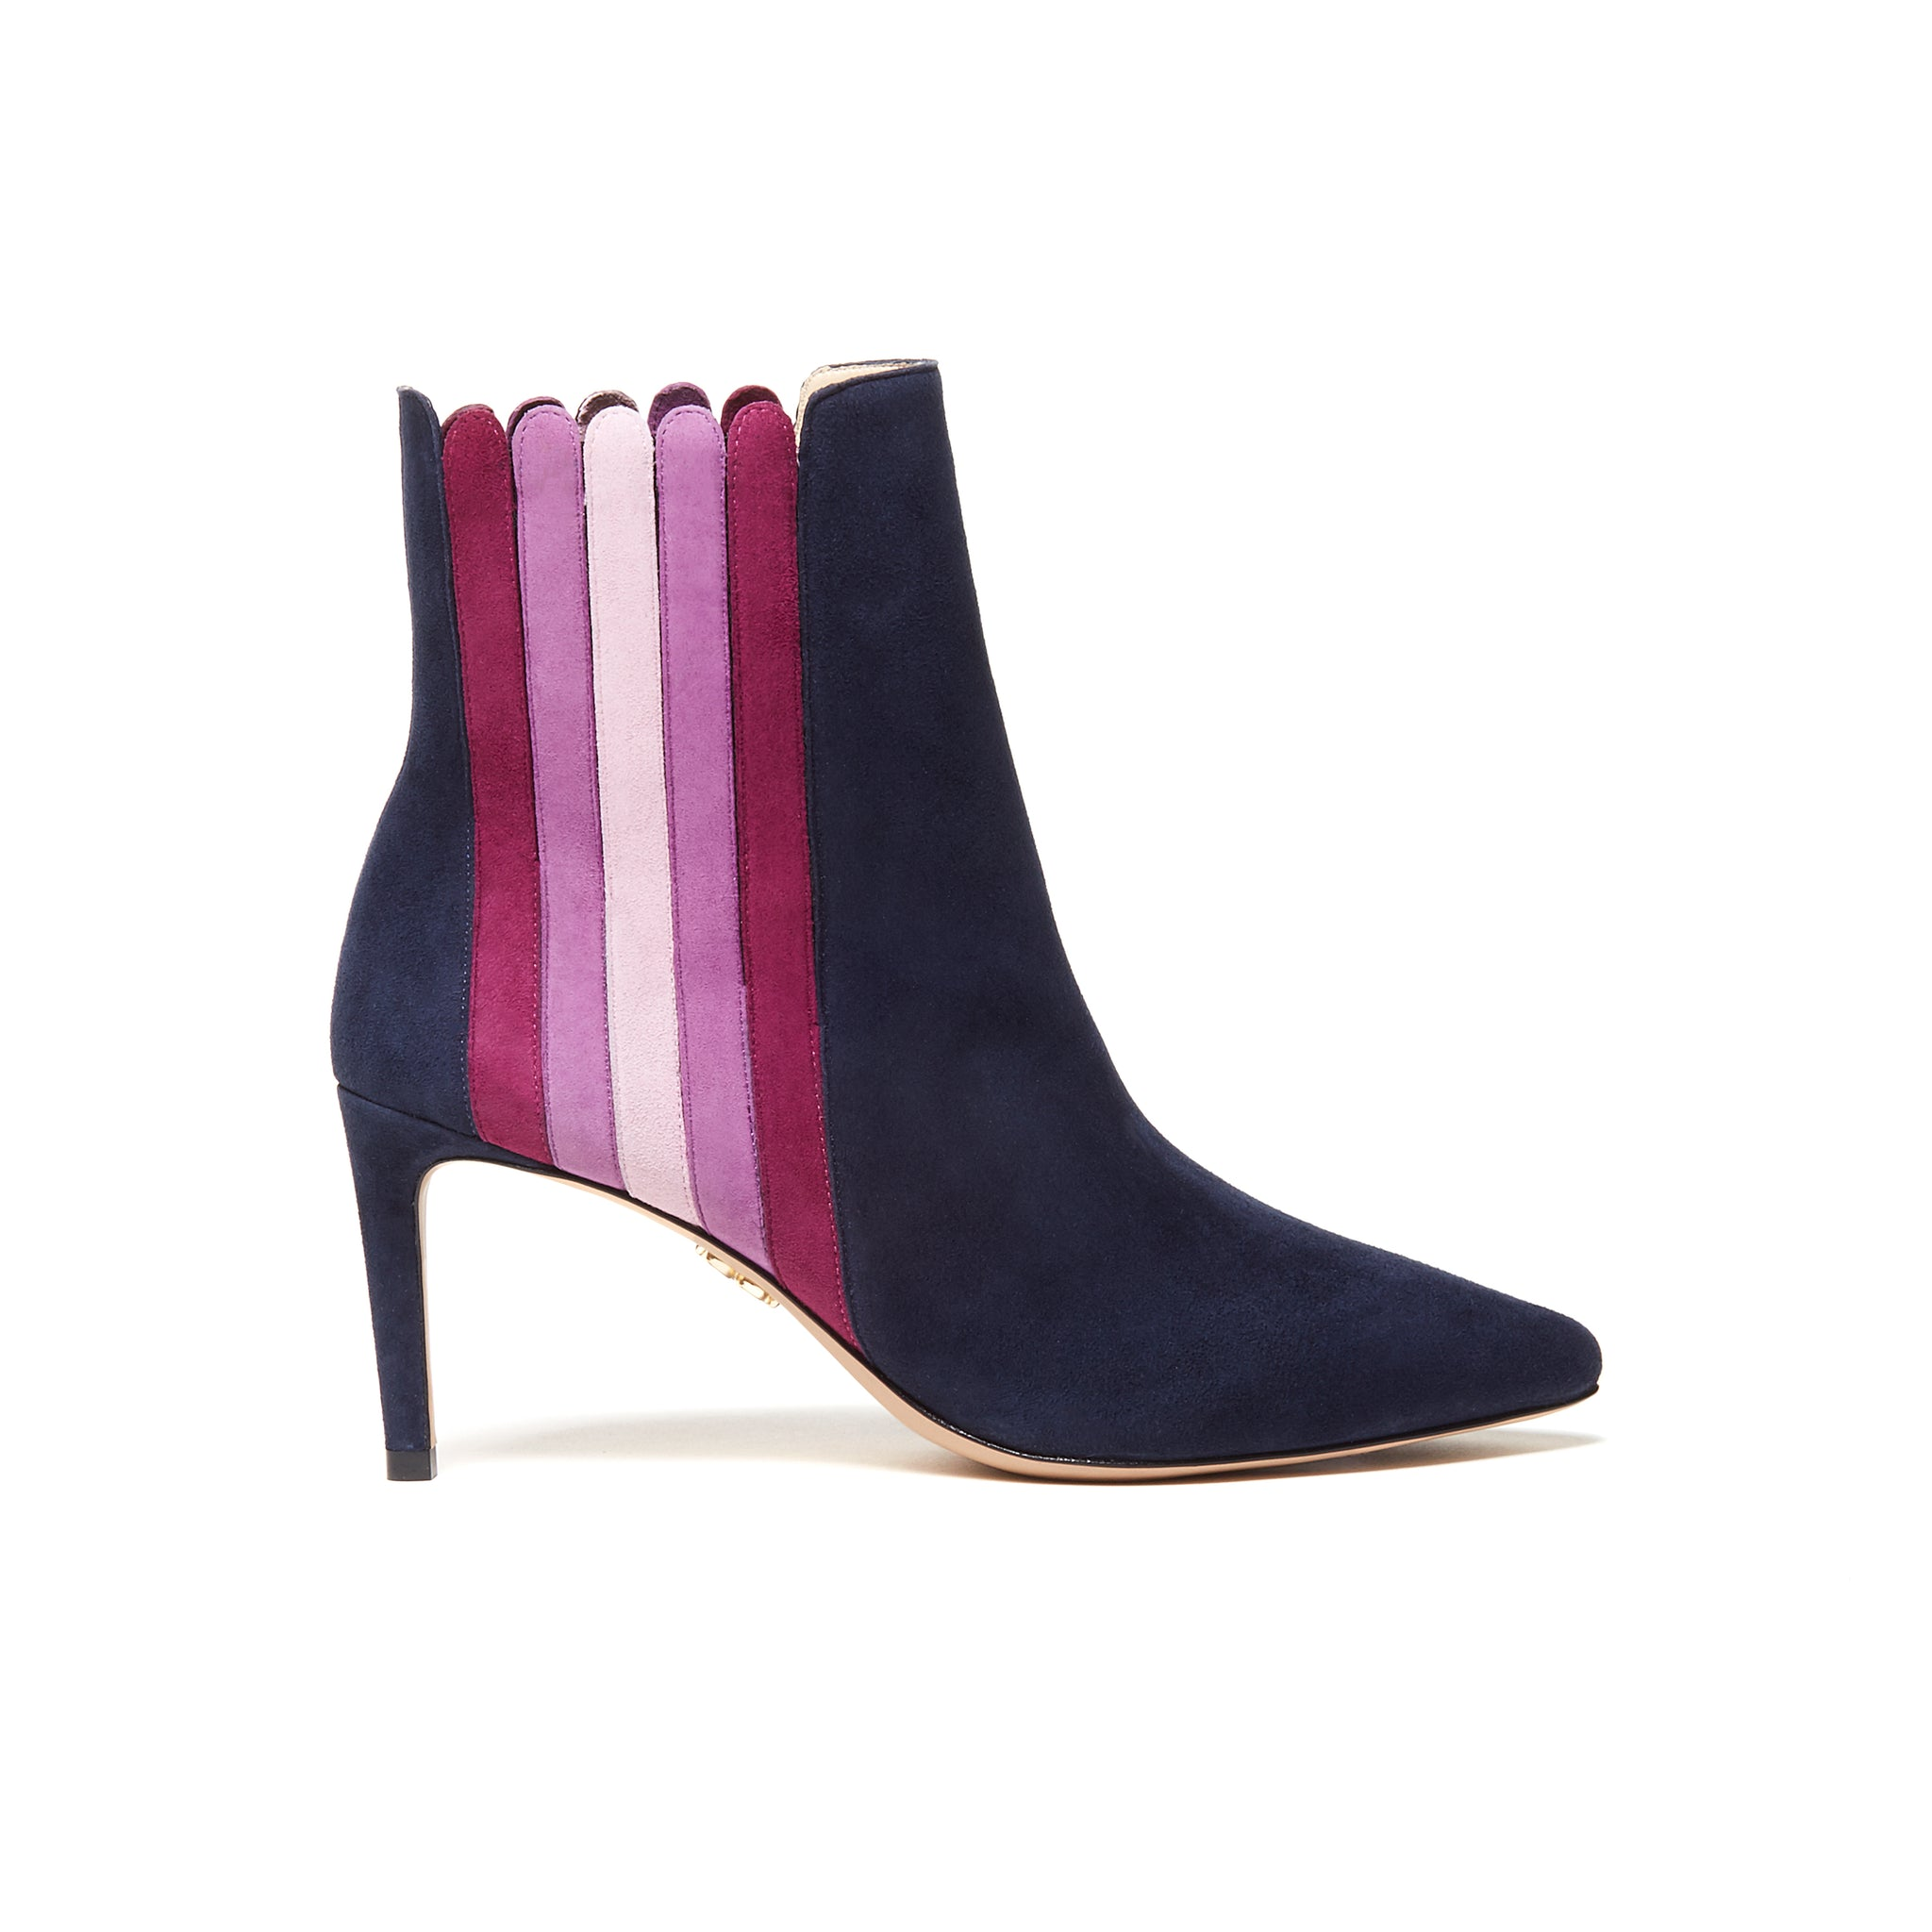 ANAIS Ankle Boots - Dark Sapphire Multi (76mm)